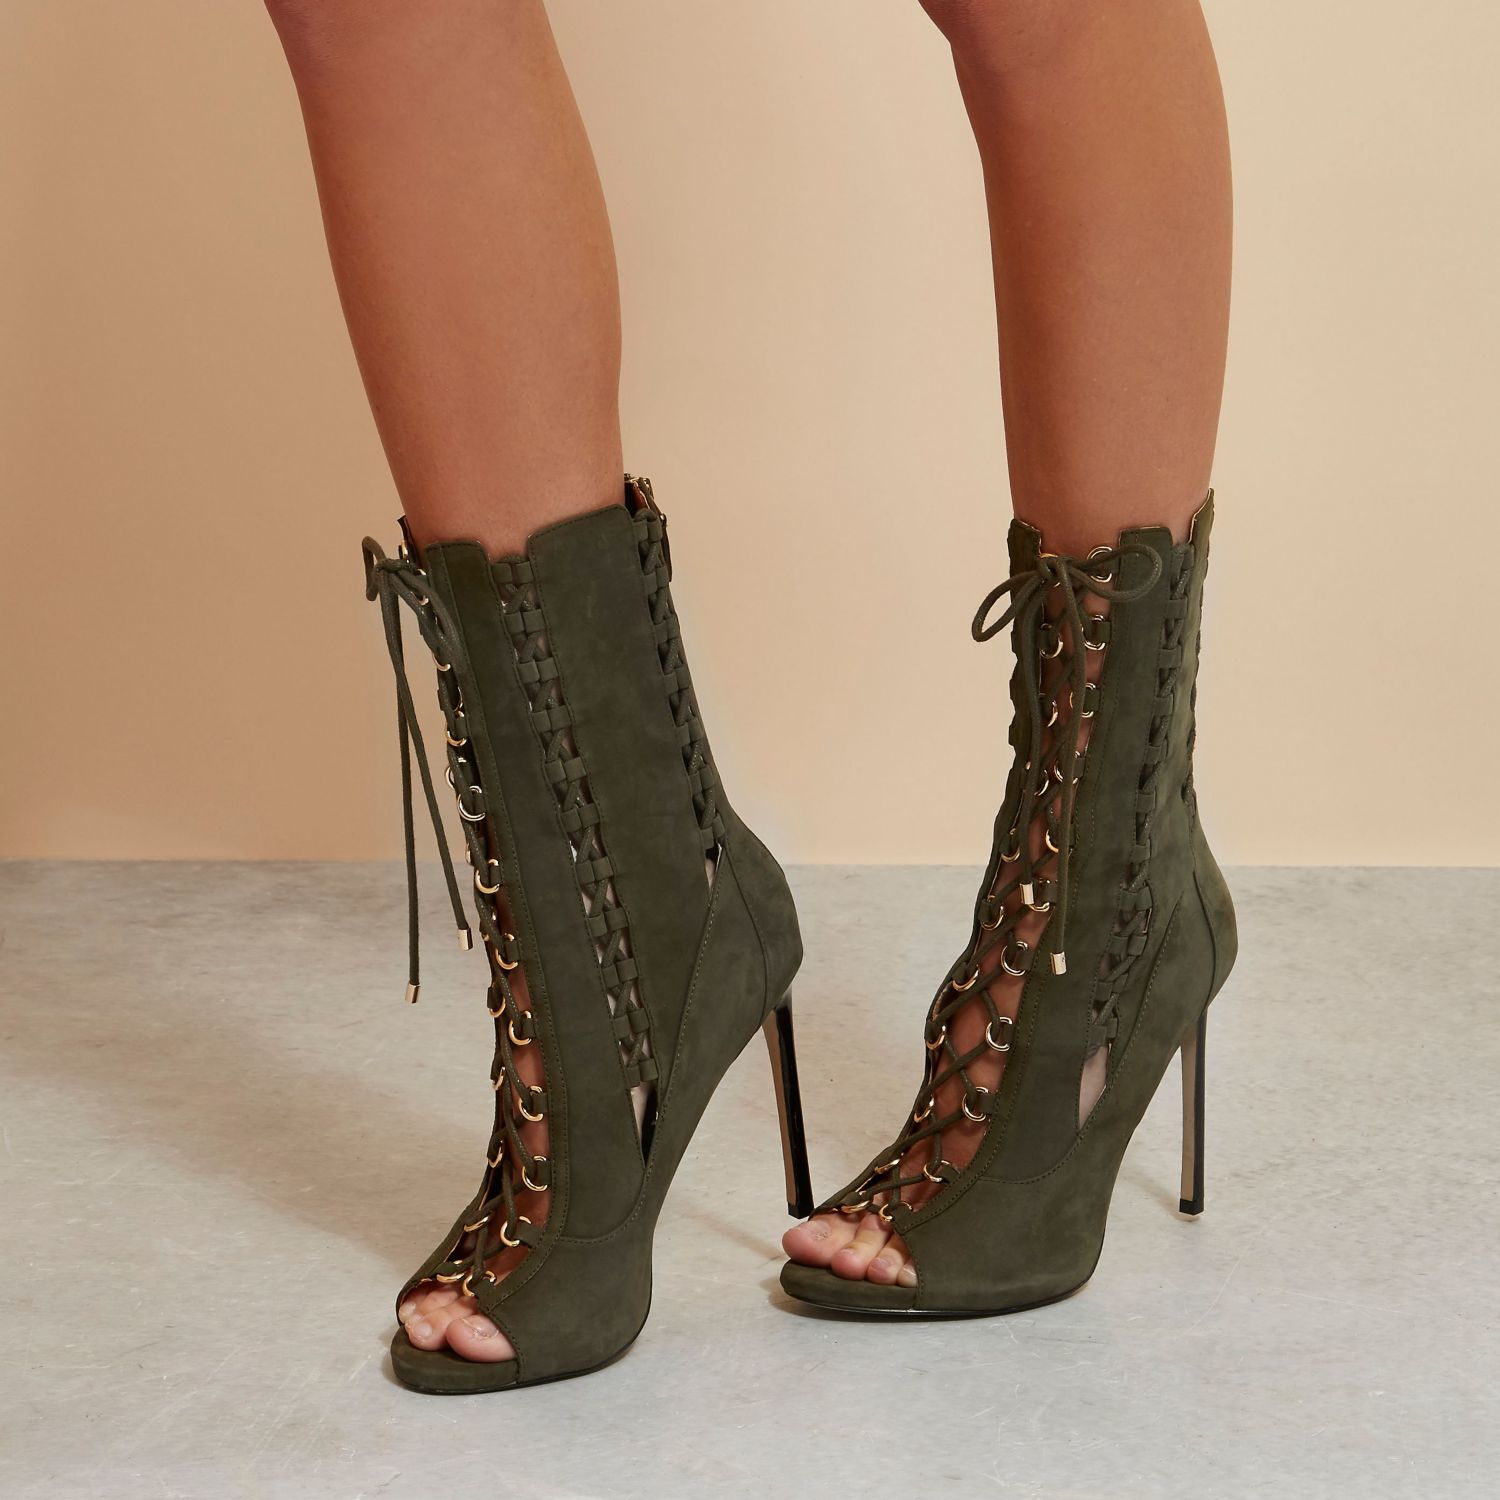 Leather Lace Up Heels - Is Heel